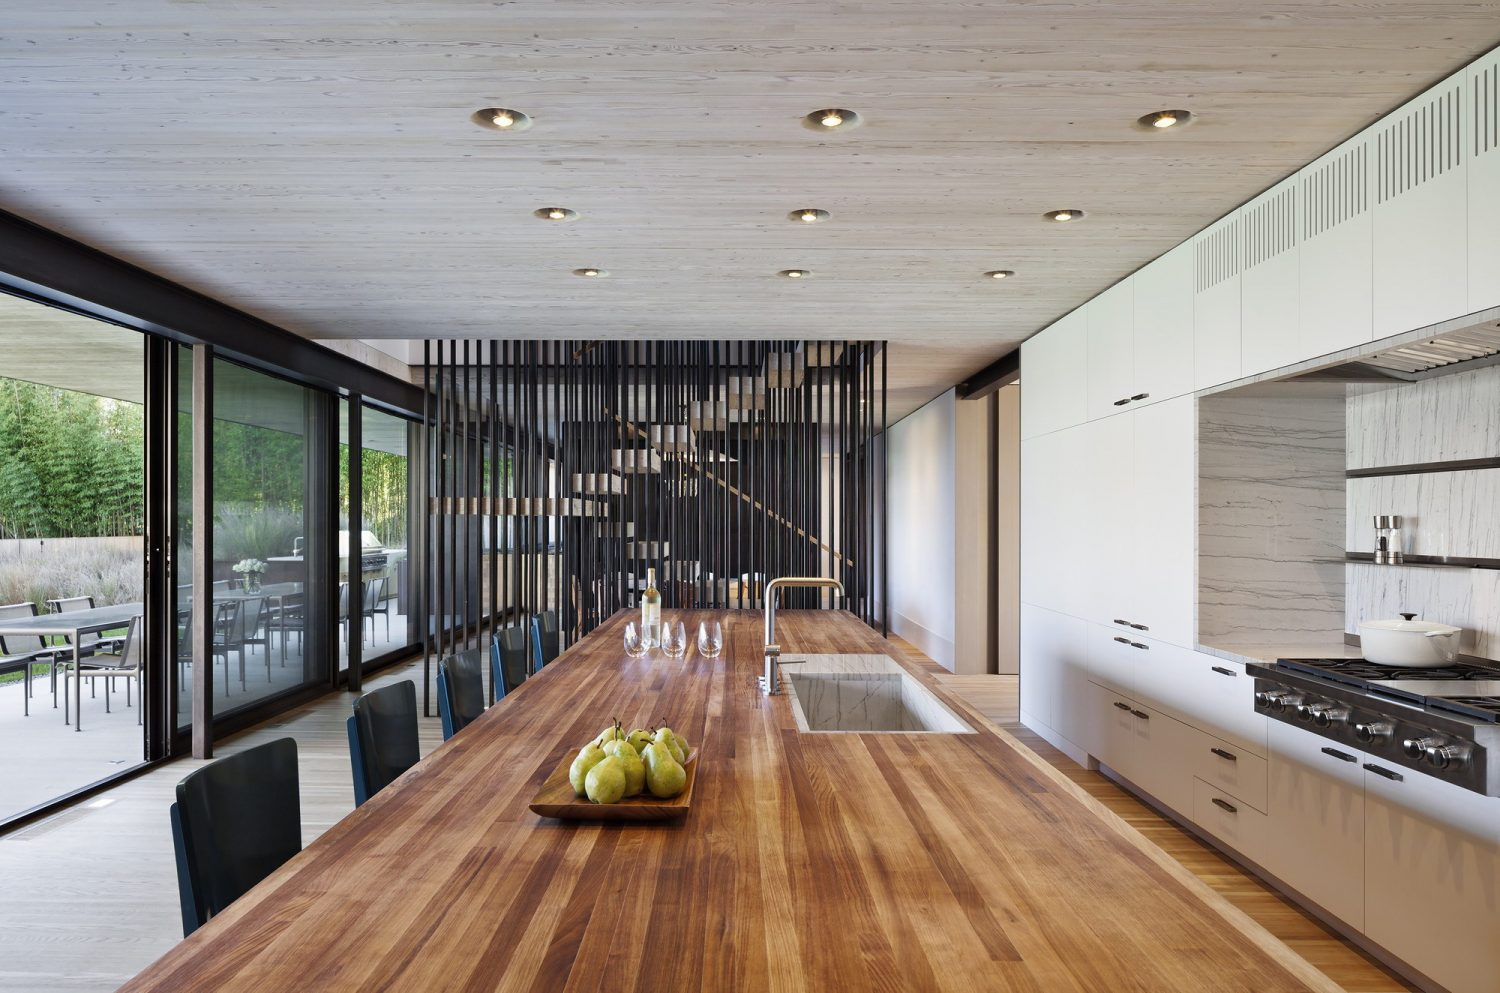 Pierson's Way | Oceanfront Residence by Bates Masi + Architects